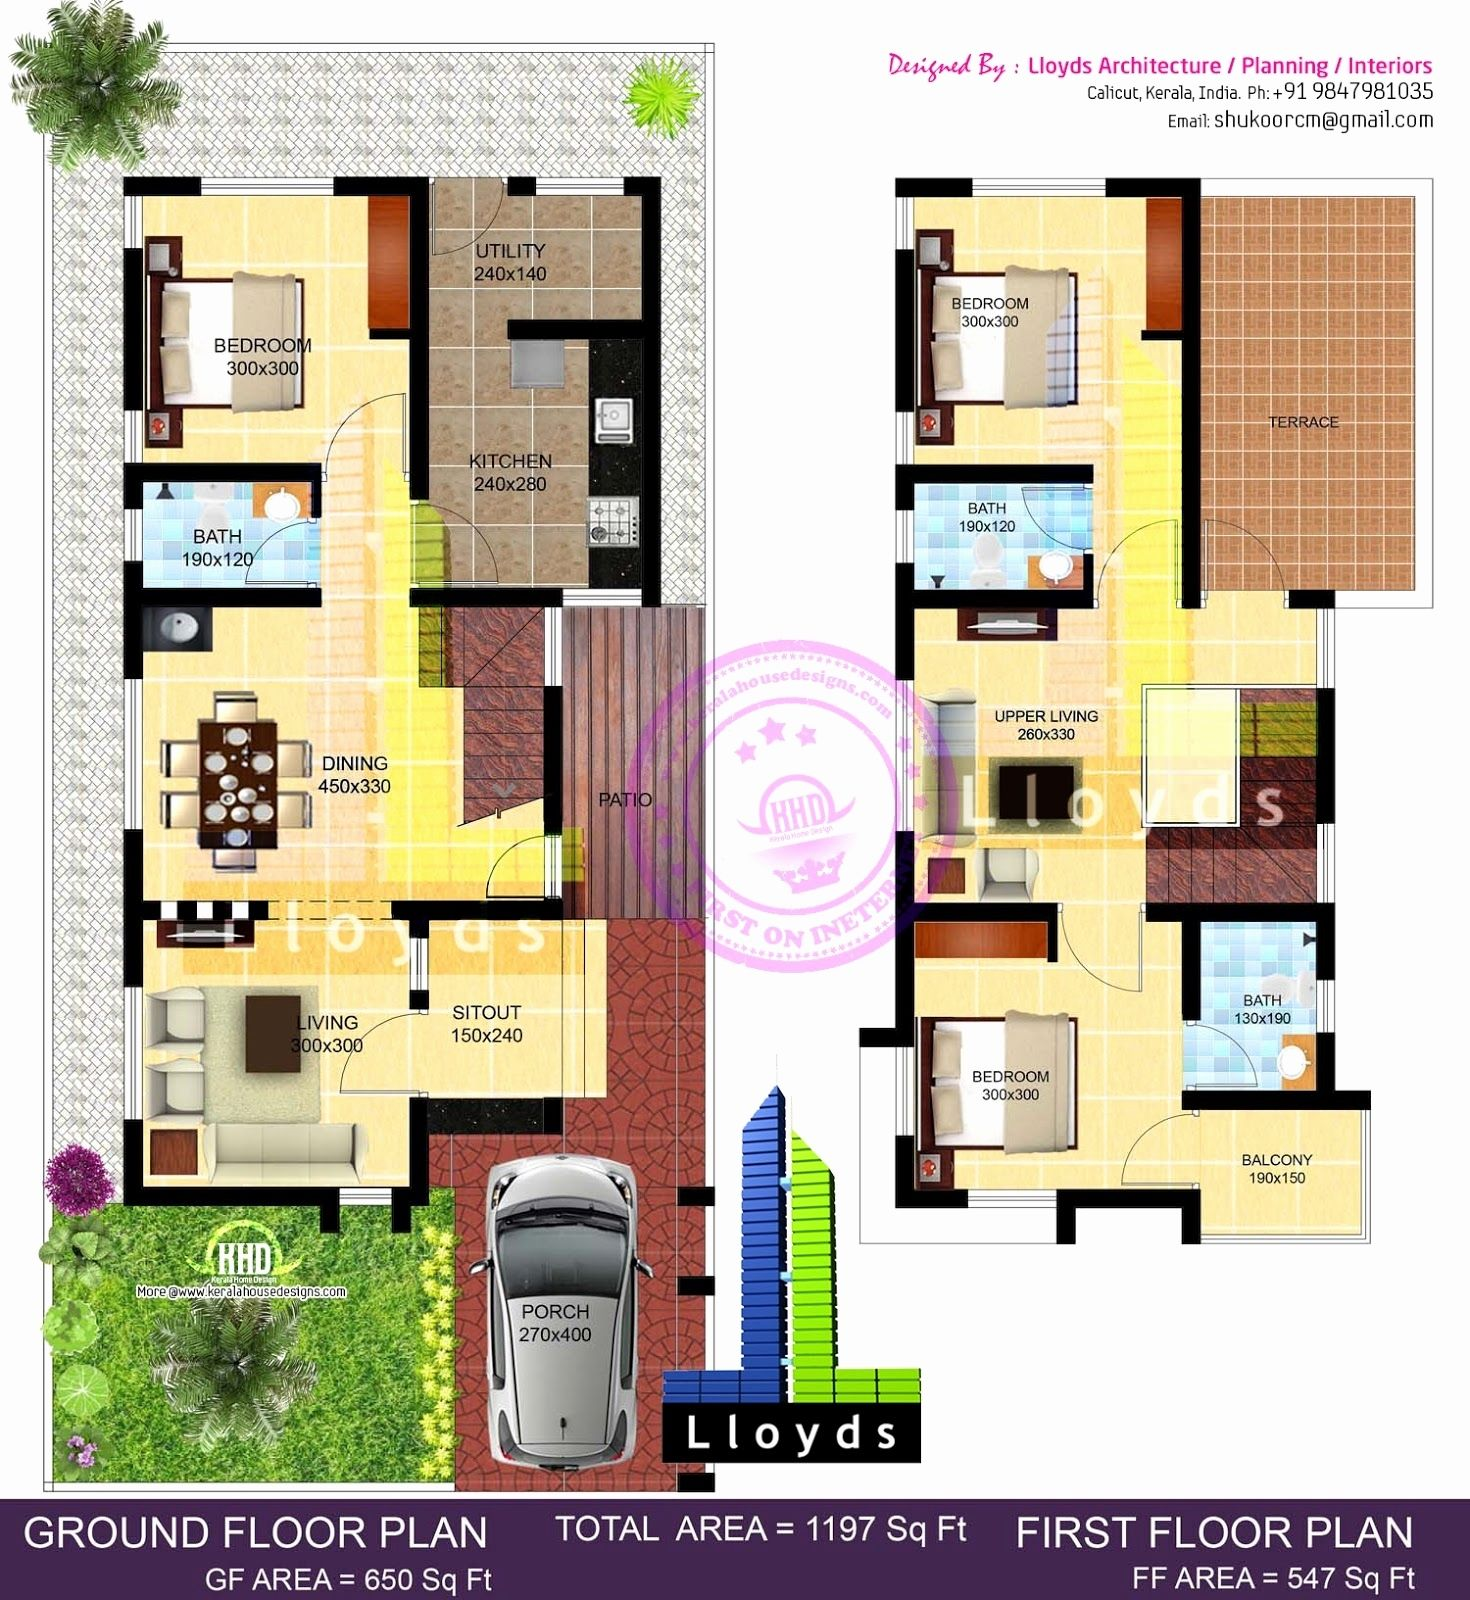 Remarkable three bedroom bungalow design and elevations single floor house plan on half plot pic plans also best images in rh pinterest